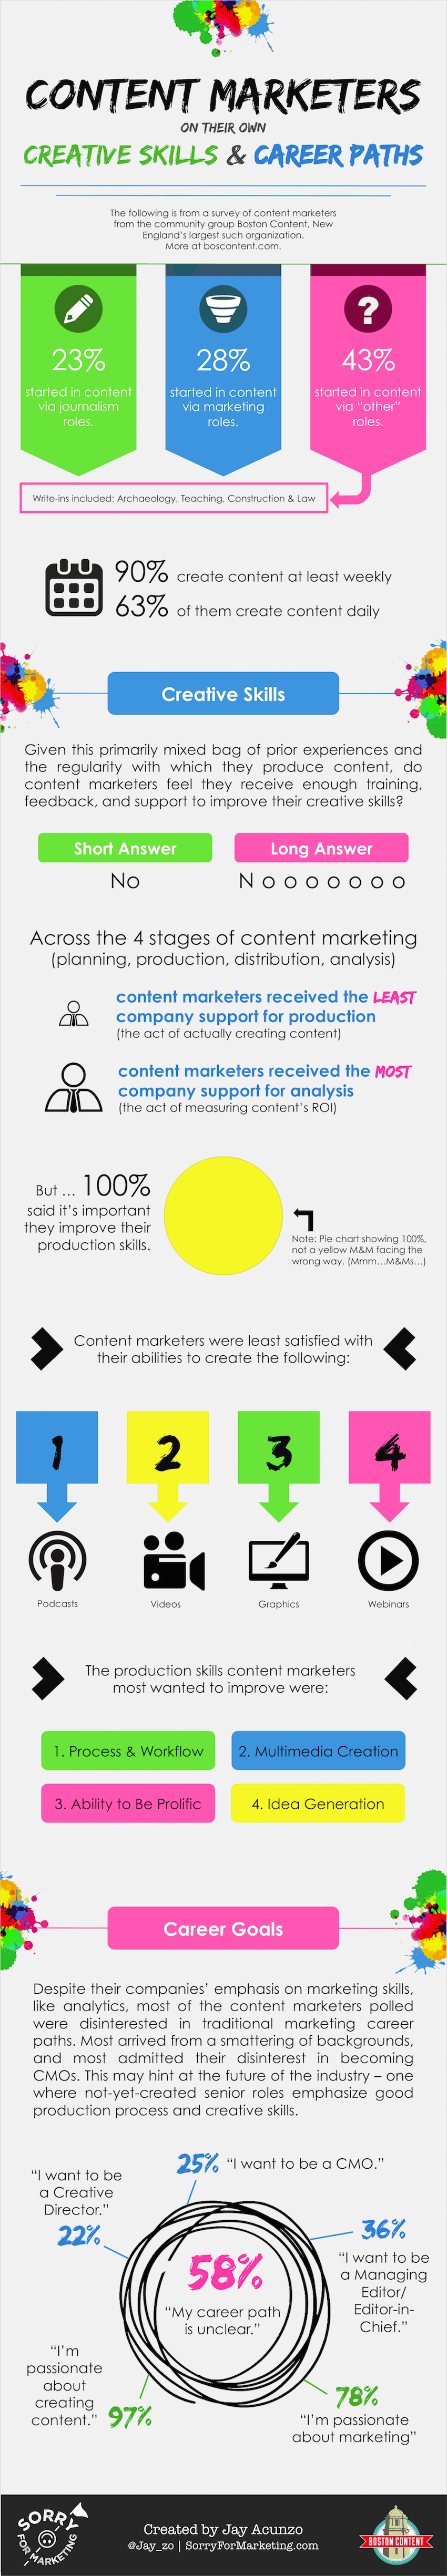 content-marketing-creative-skills-graphic